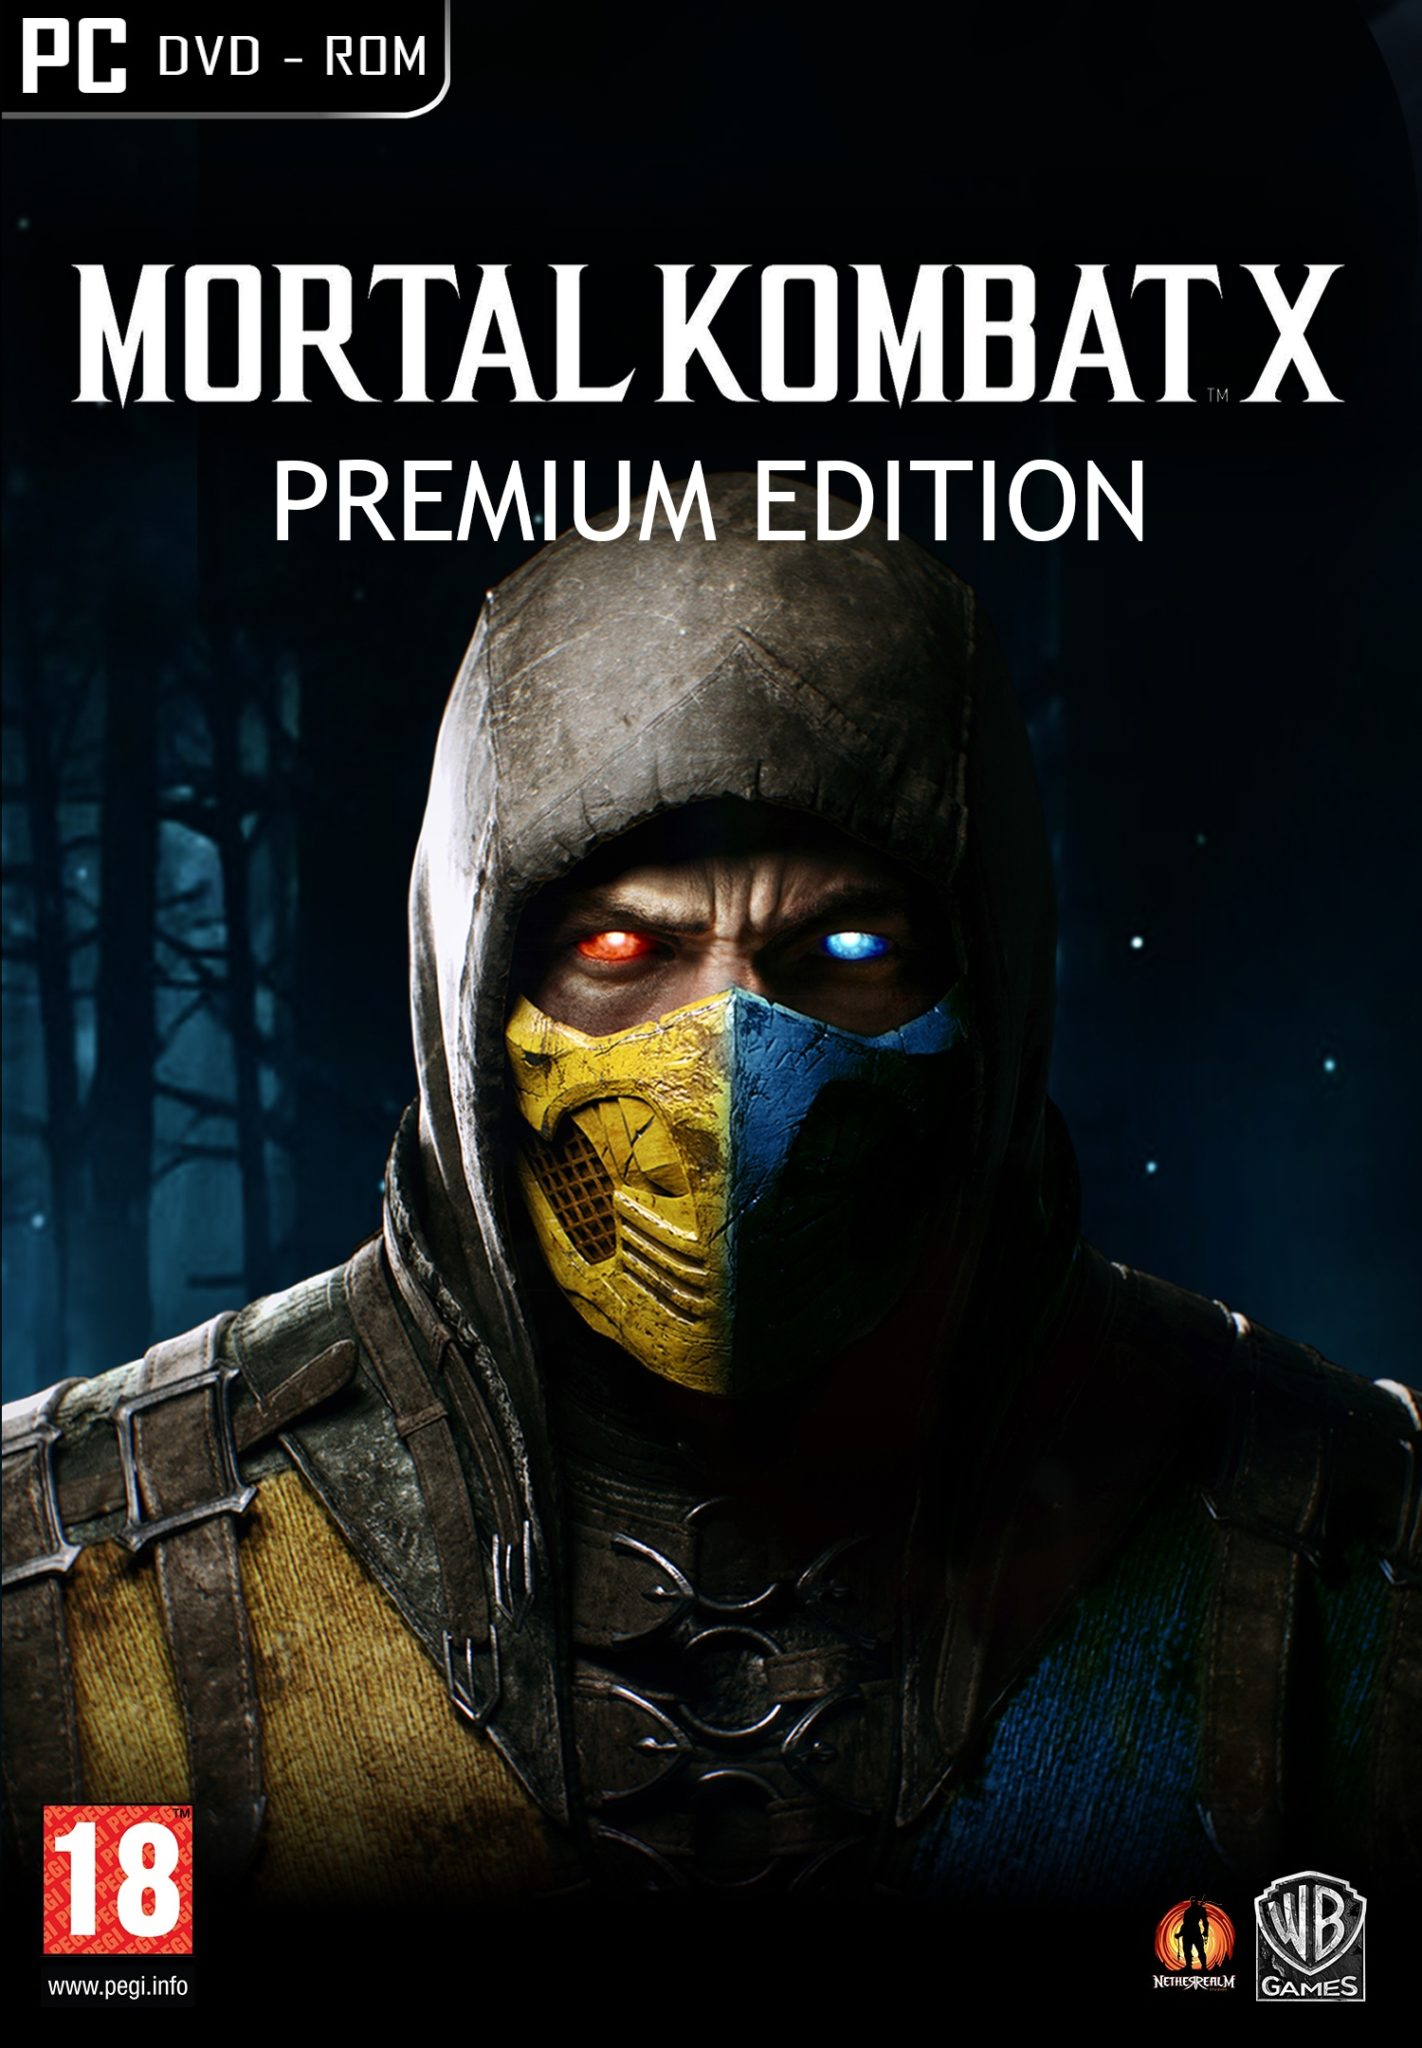 Mortal Kombat X Premium Edition – PC